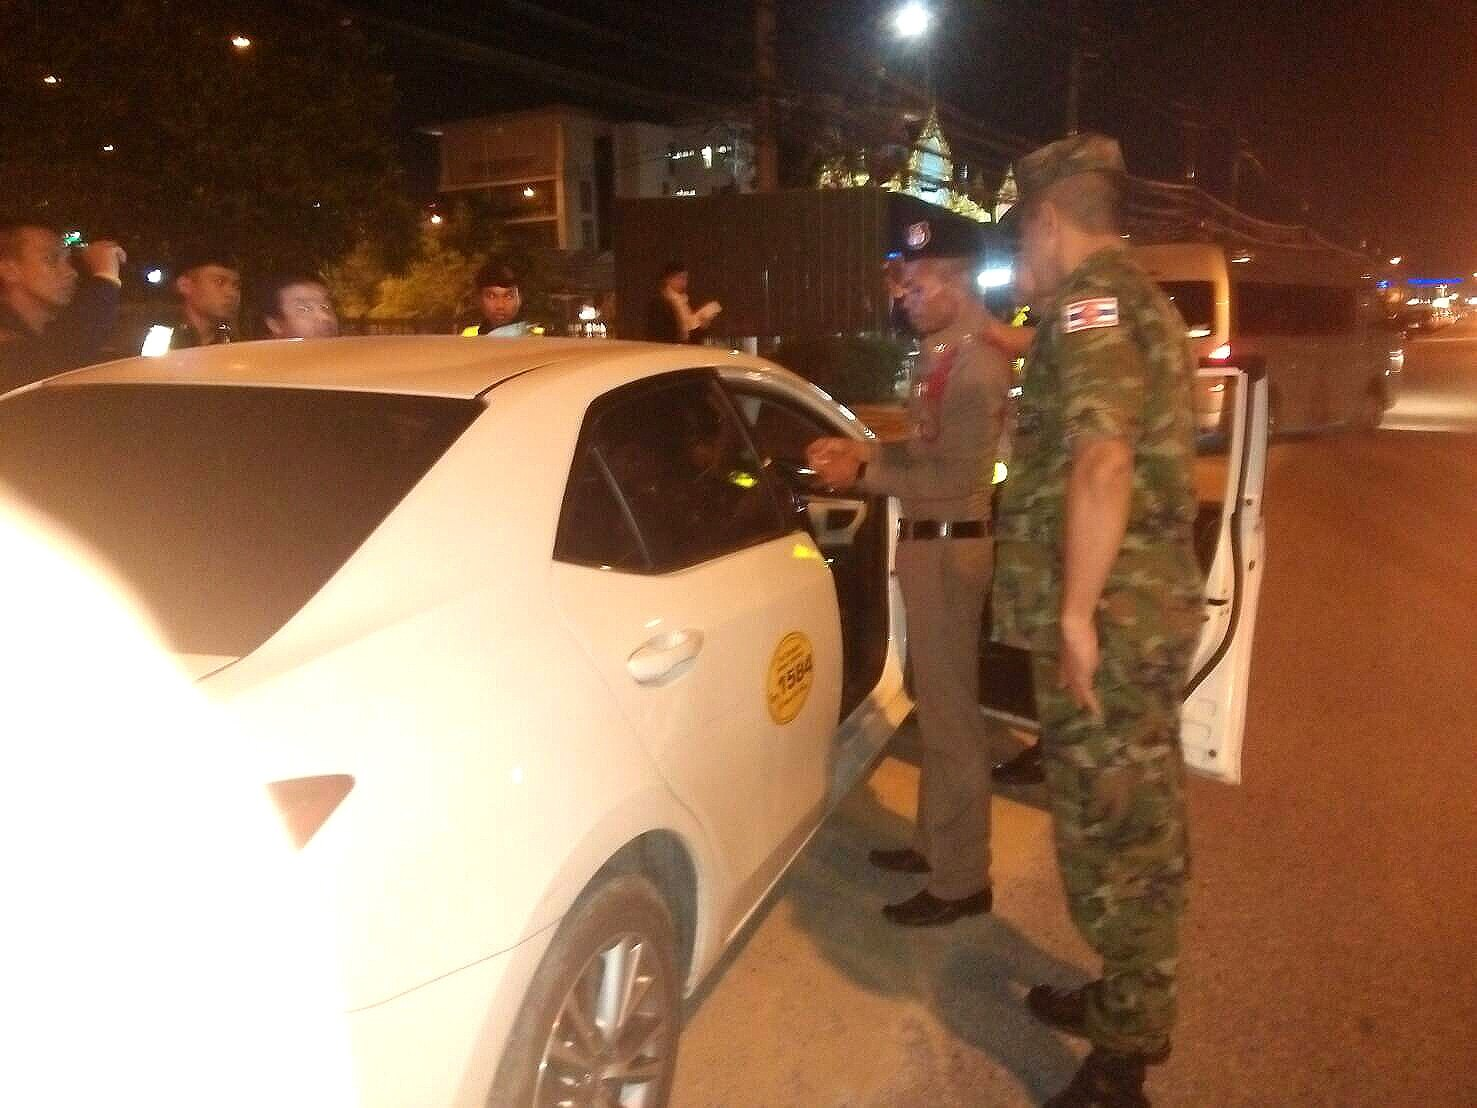 cec65dd9d8 Phuket green plate taxi arrested for drugs at Airport